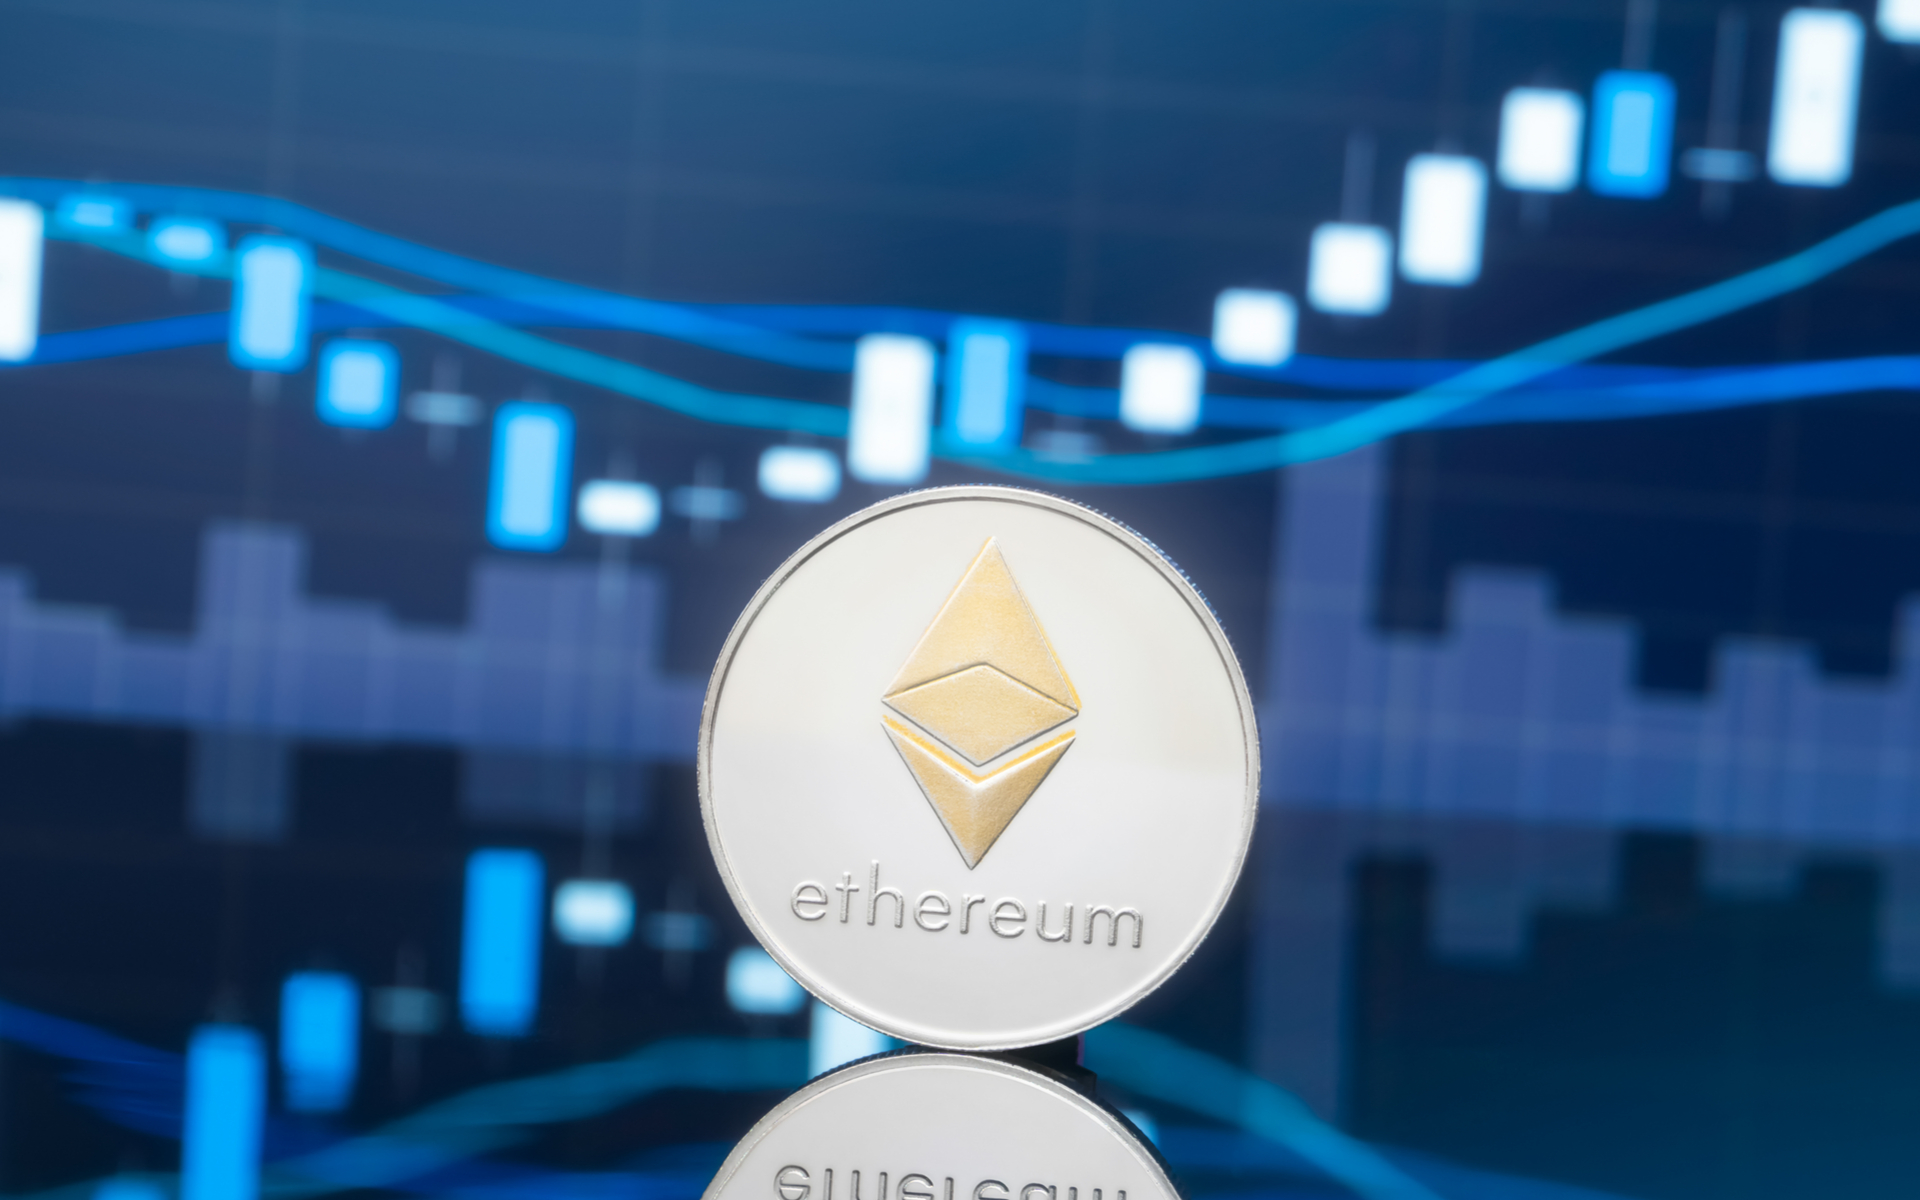 Ethereum Price Analysis: ETH Hits New YTD-High, Can it Hold Above $200?